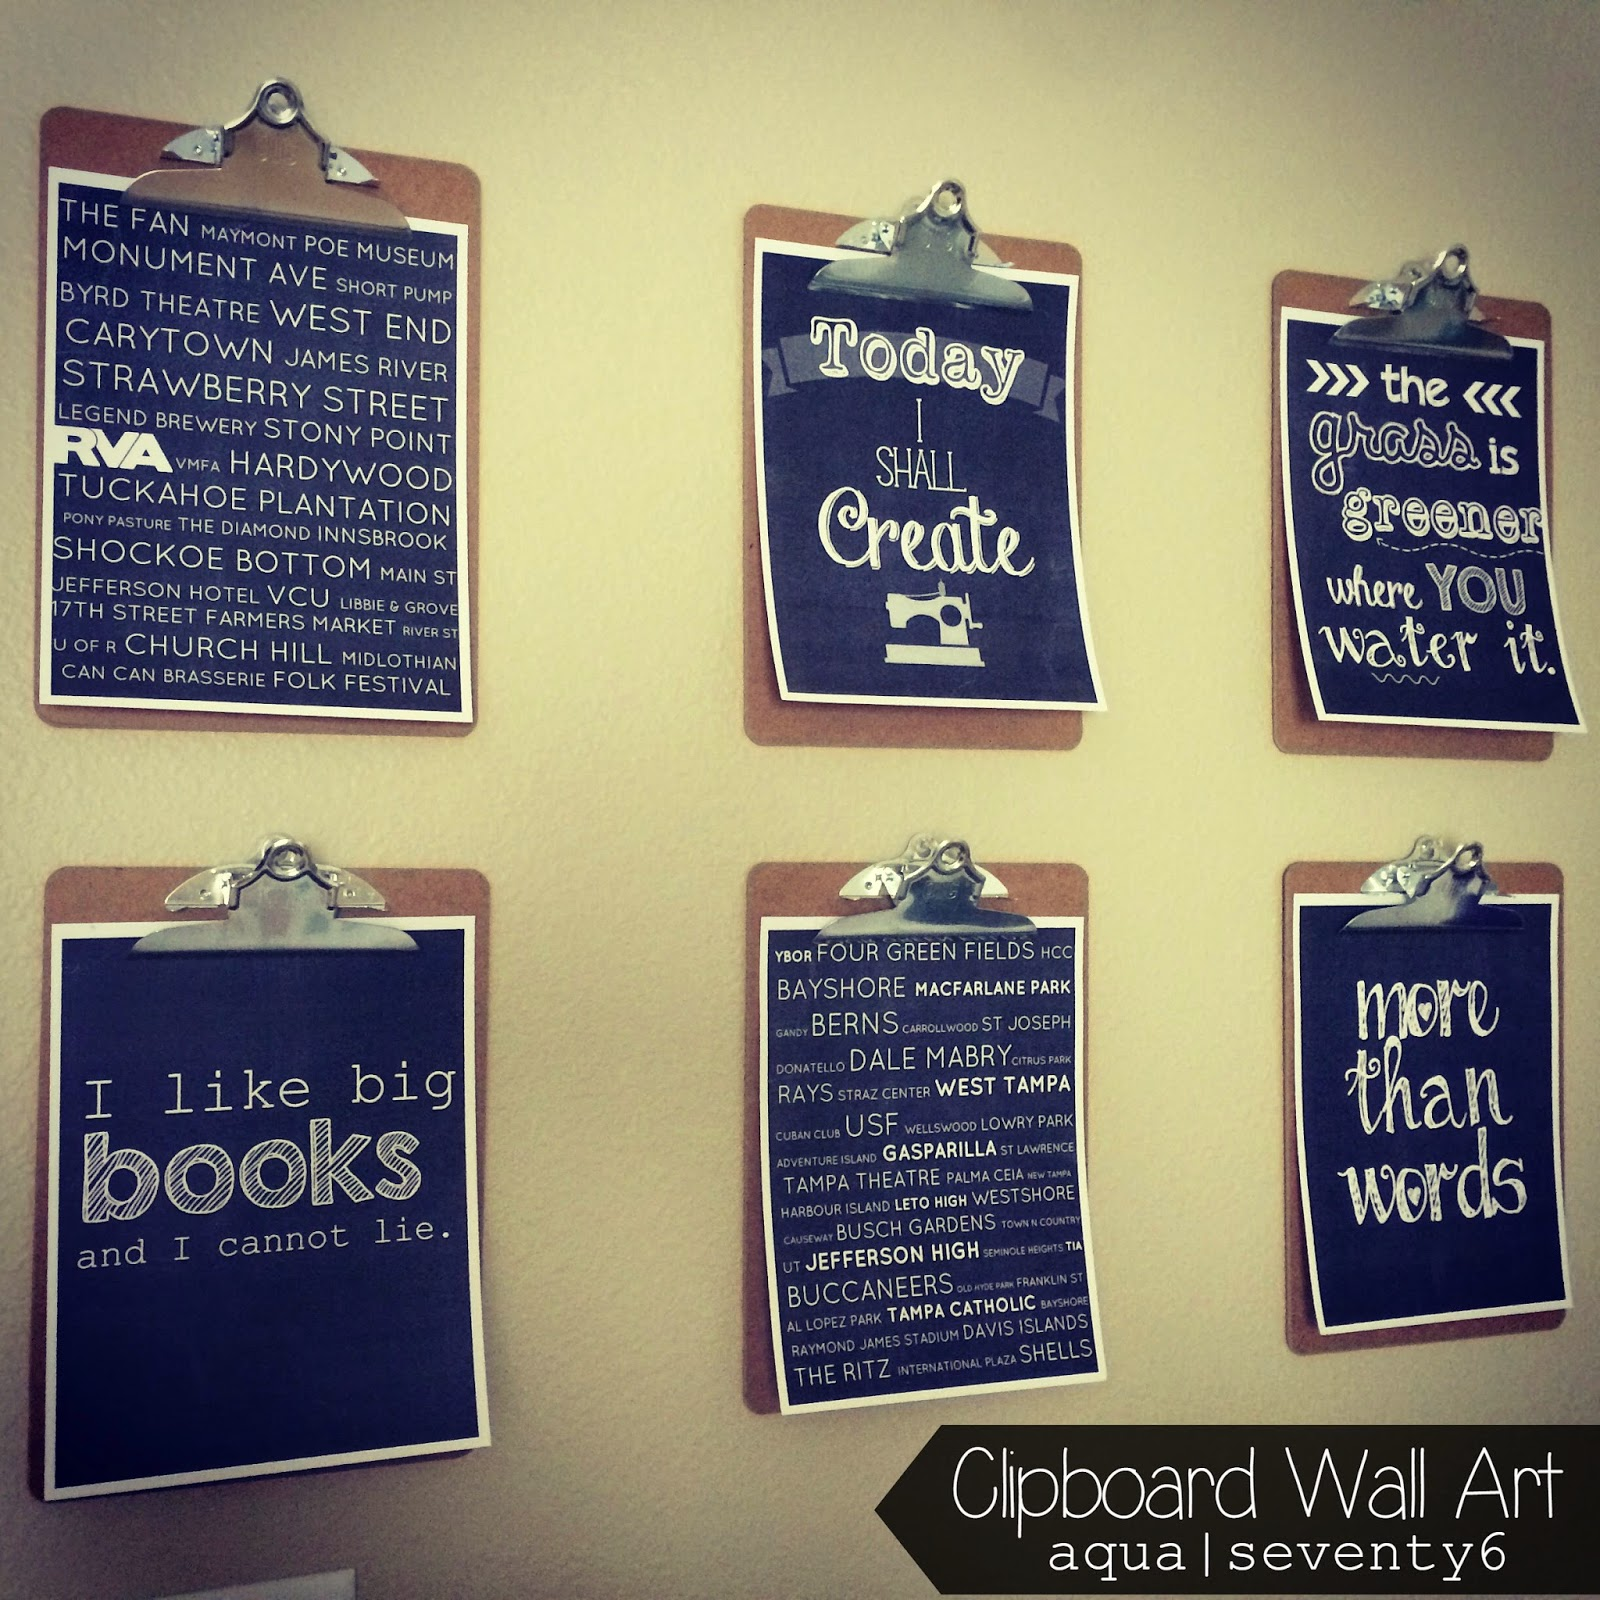 Clipboard Wall Art and Framed Thread Rack